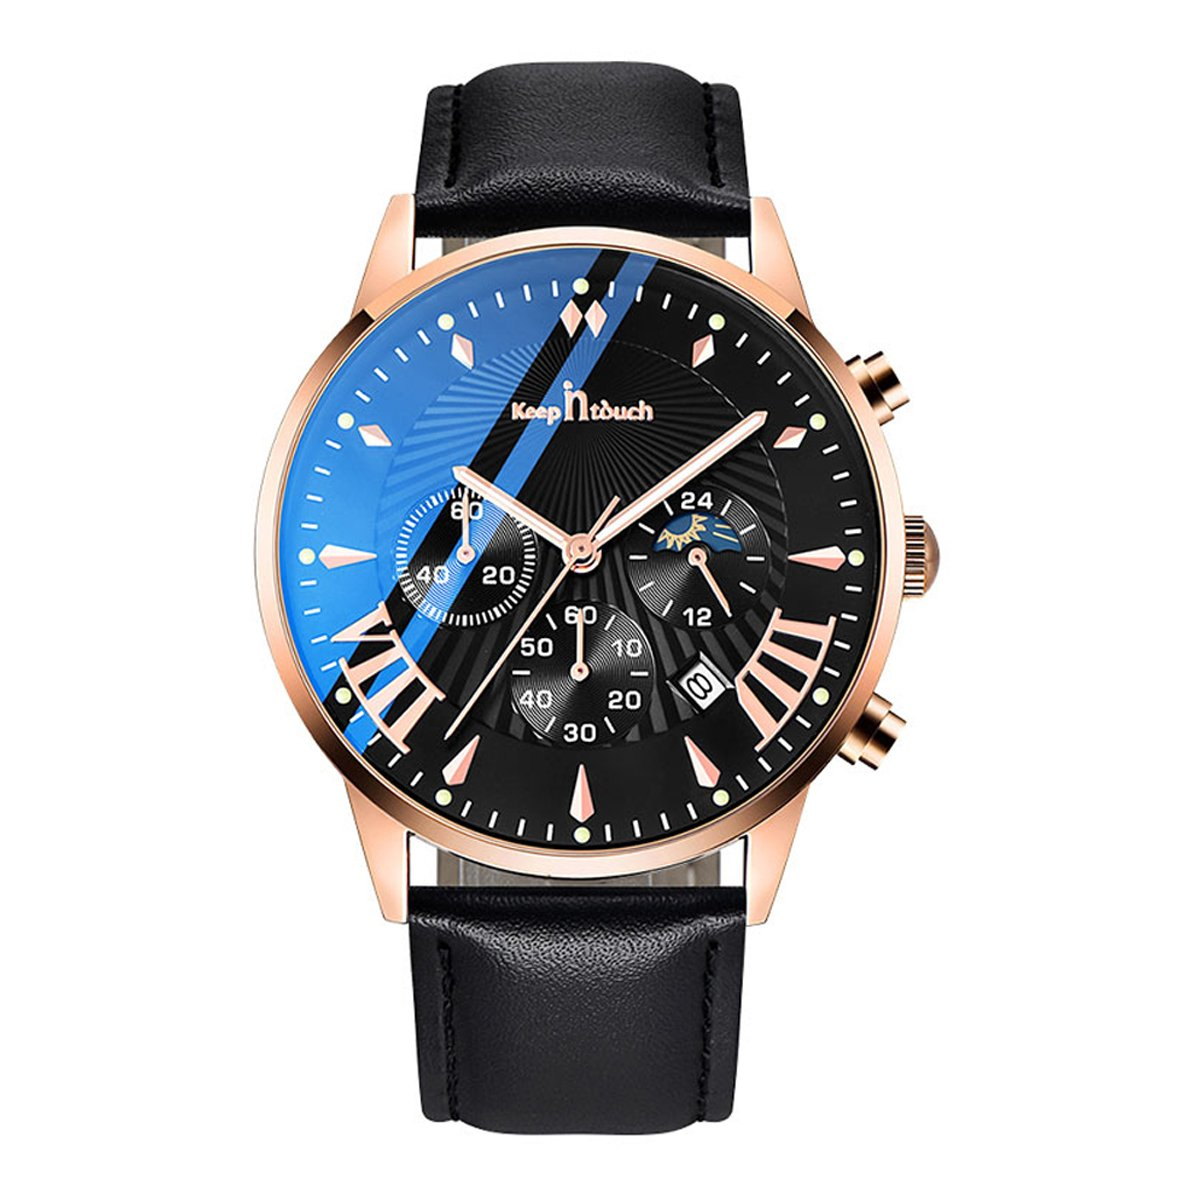 Stylish Waterproof KEEP IN TOUCH Men's Watch with Luminous Effect